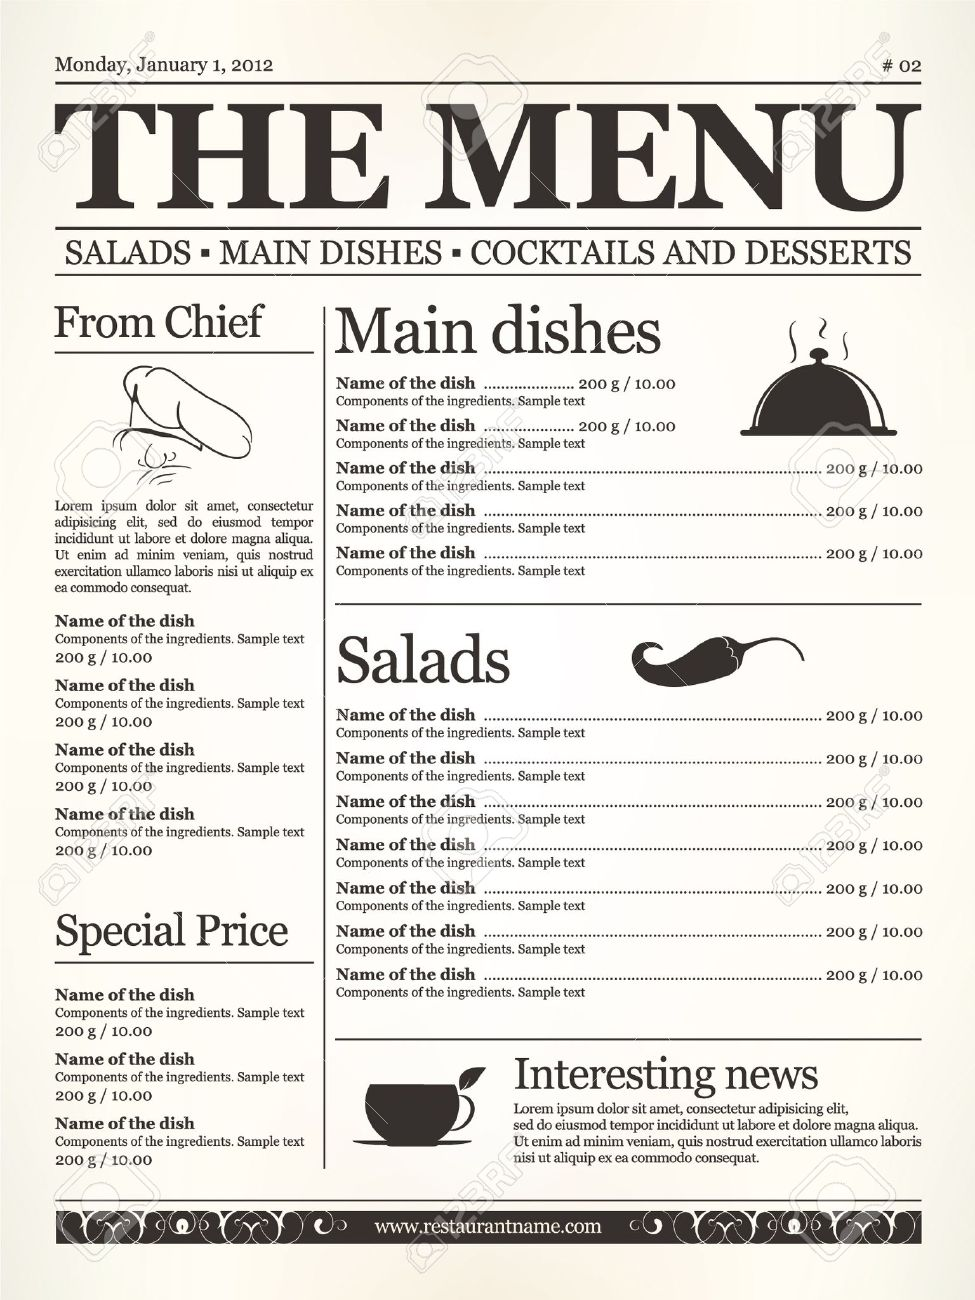 Restaurant Menu Design Concept Type Of Old Newspaper Royalty Free Cliparts Vectors And Stock Illustration Image 11539273